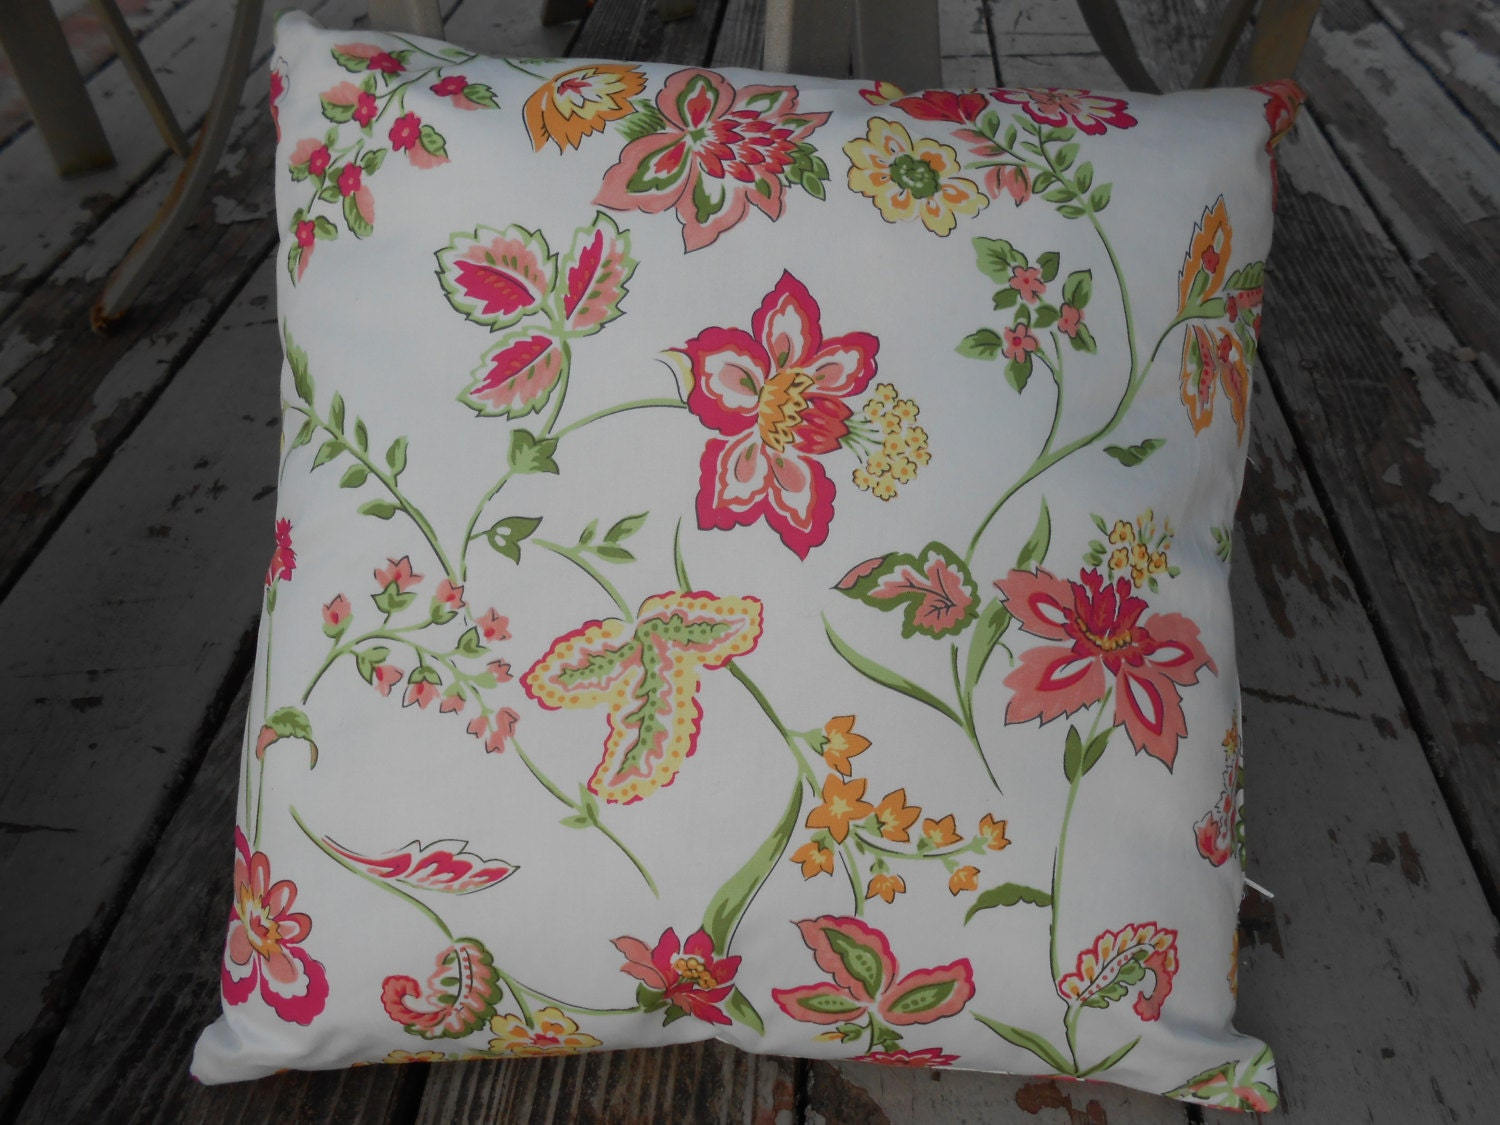 Throw Pillow Form Insert : Floral Throw or Decorative Pillow with Cover and Insert/Form